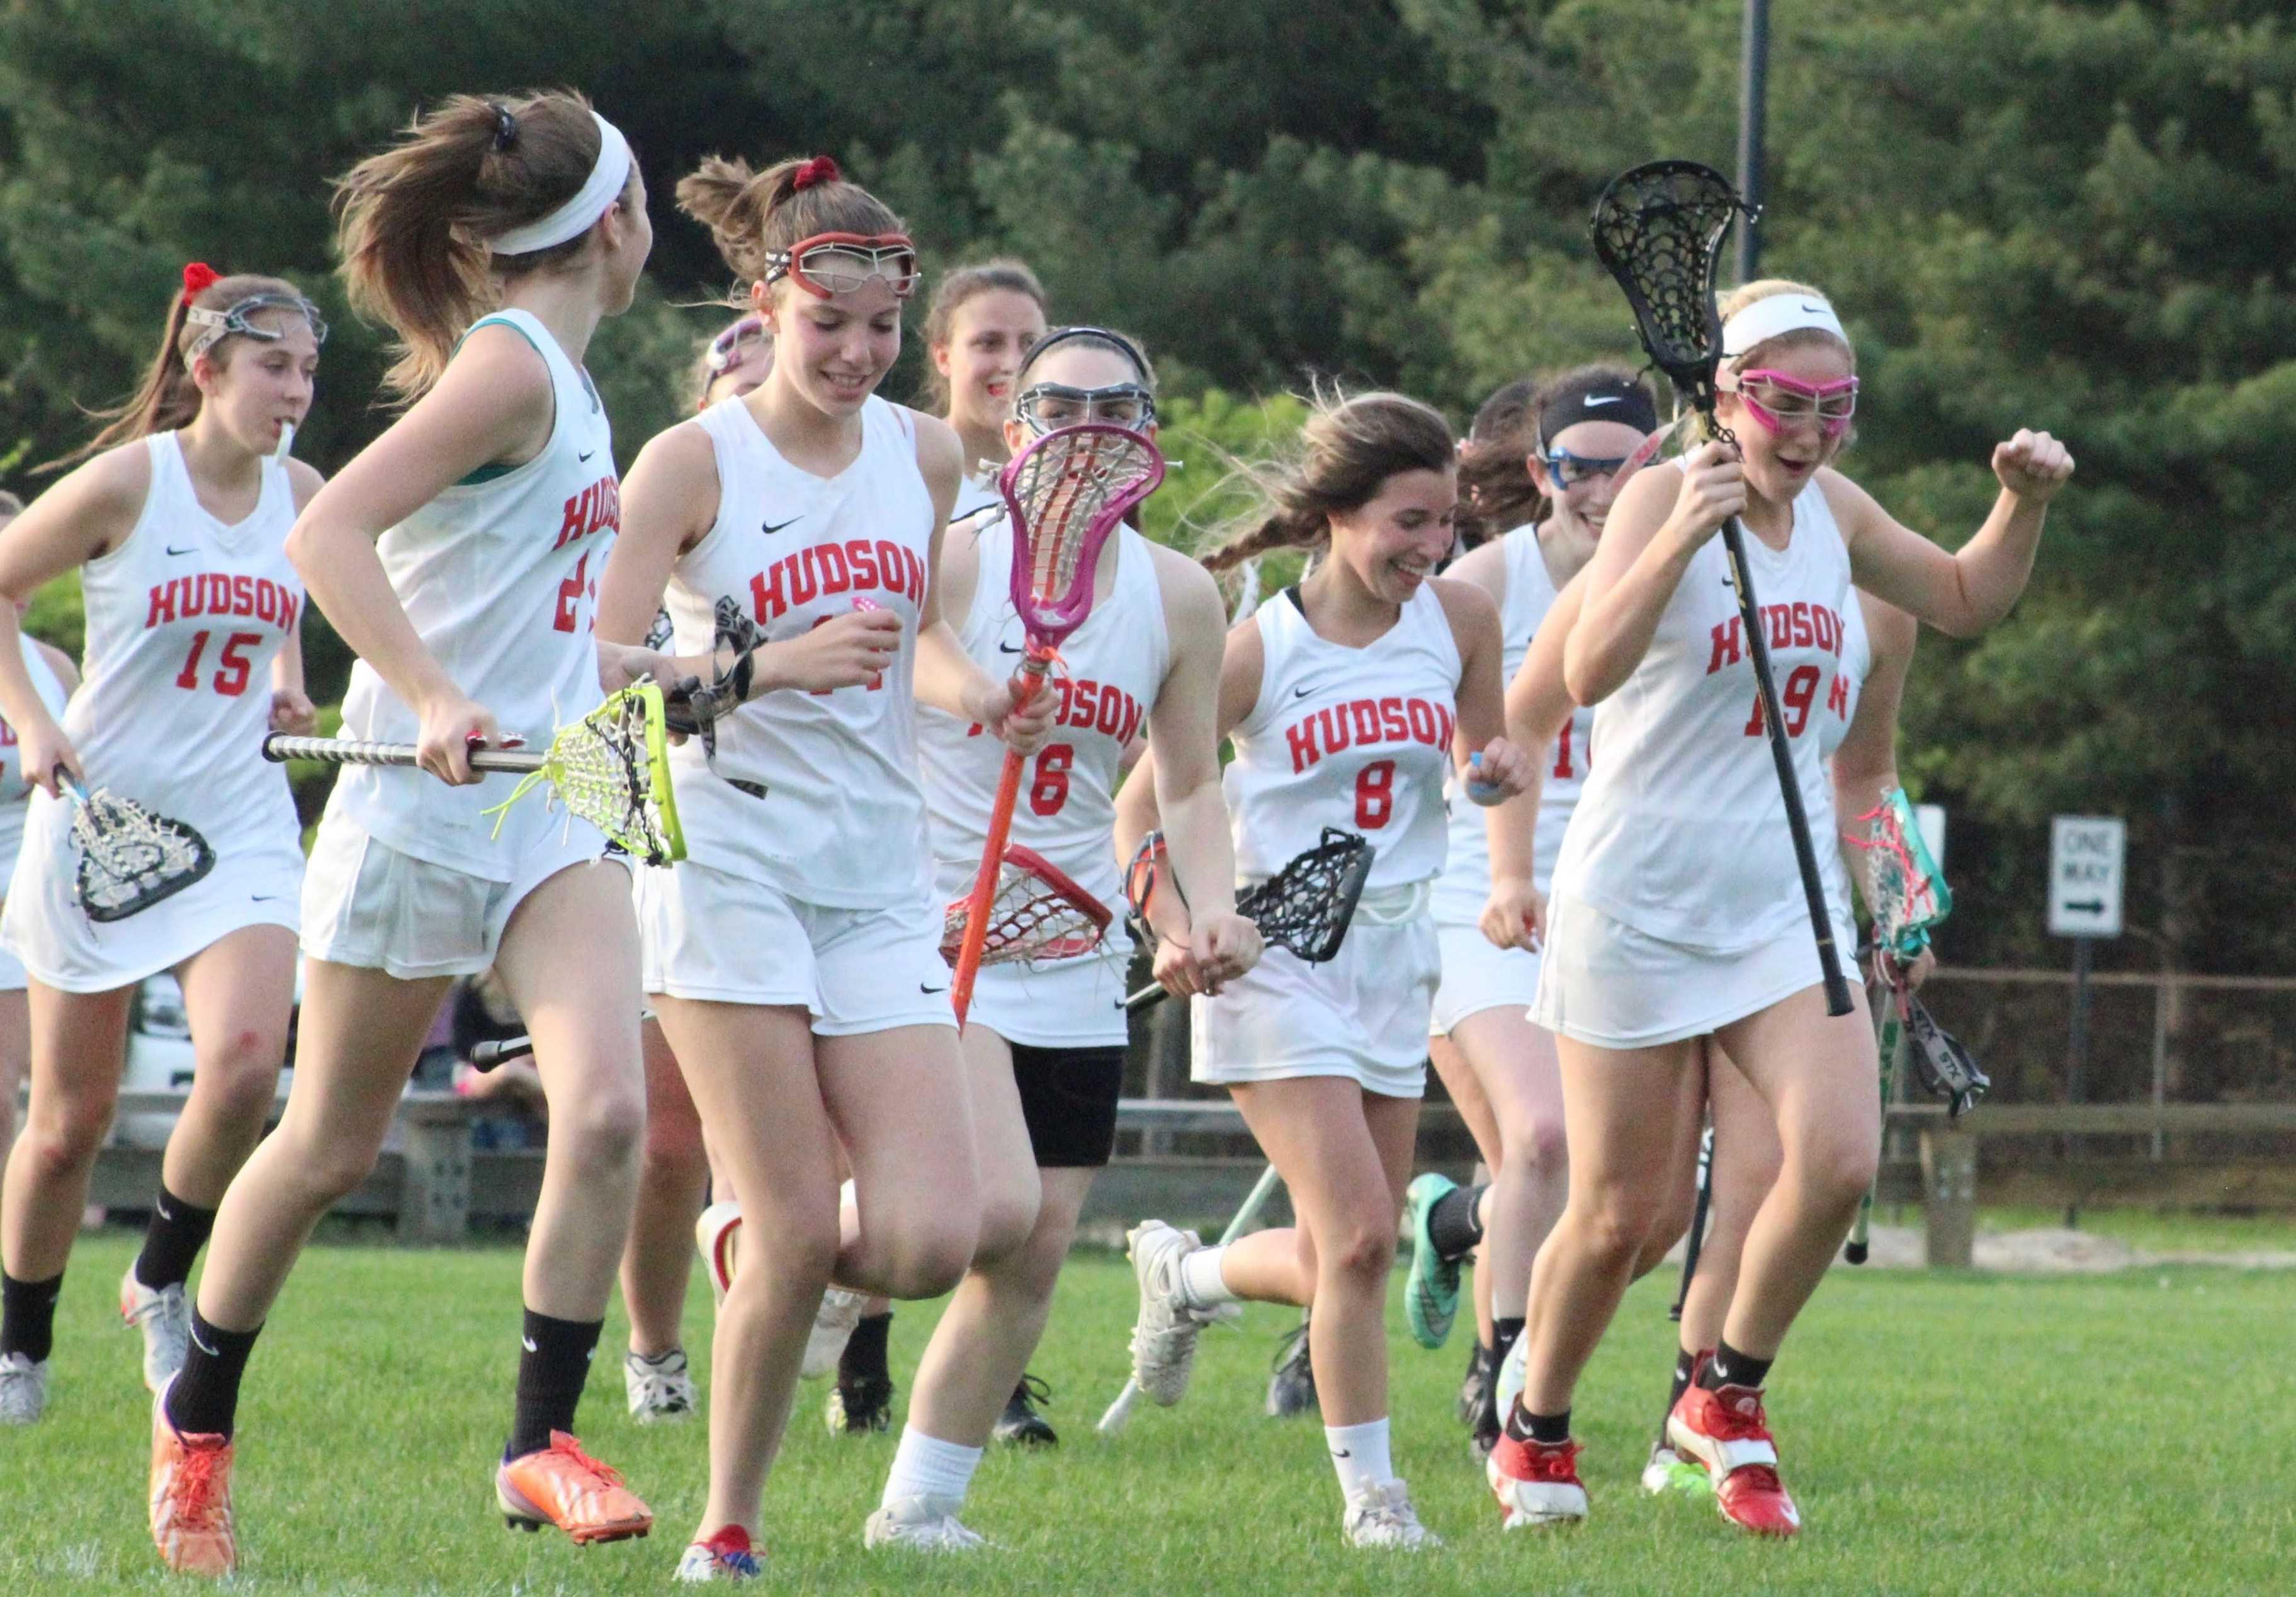 The Hawks cheer as they run over to the bench after defeating Marlborough 12-11 in over time.   by Siobhan Richards